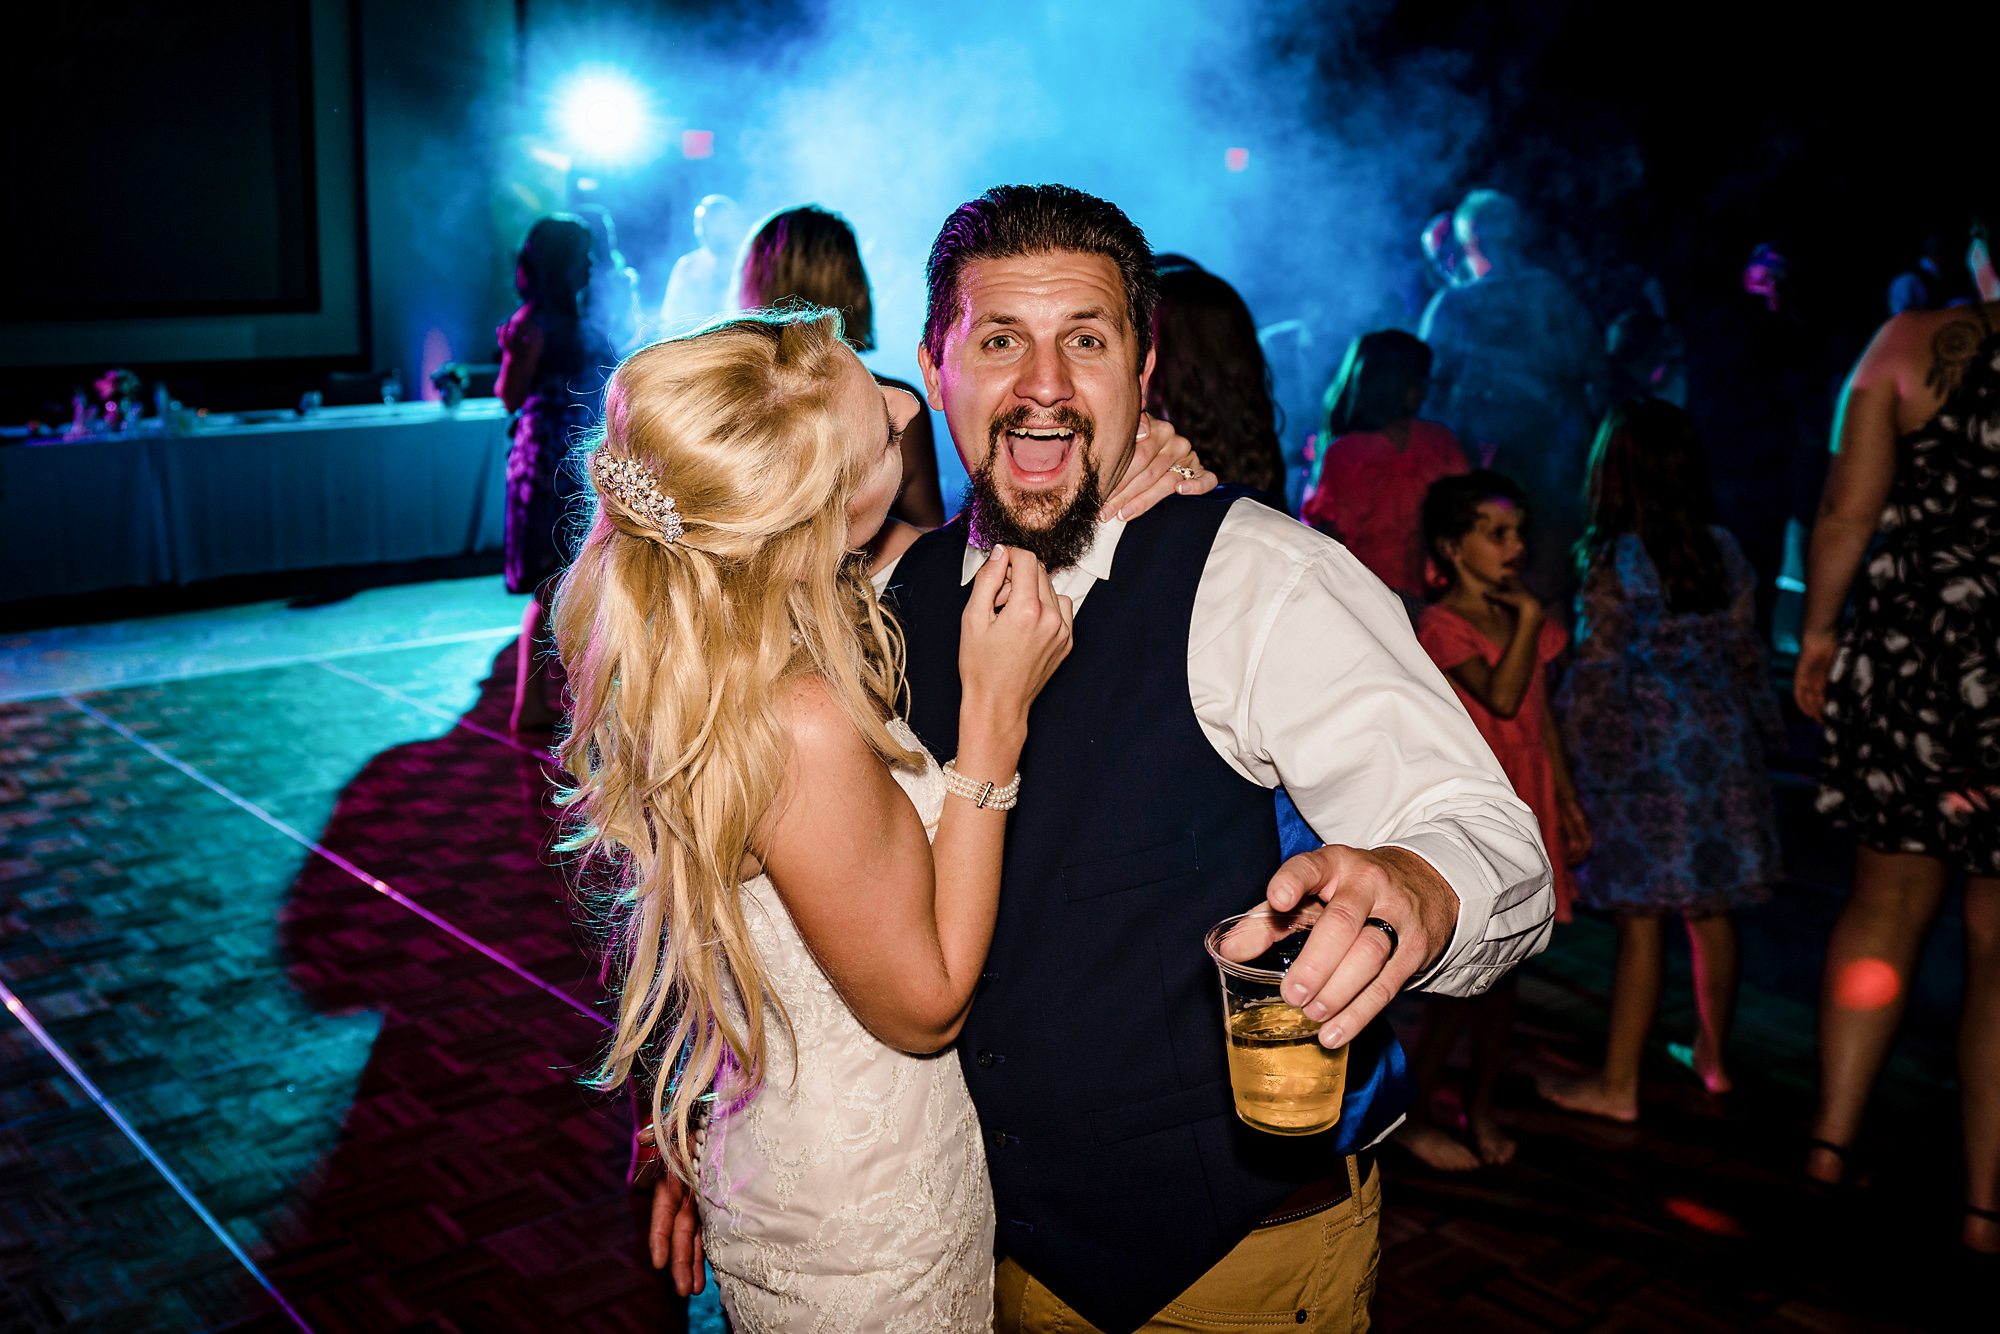 Lawrenceburg-Event-Center-Cincinnati-Wedding-Photographers-33.jpg